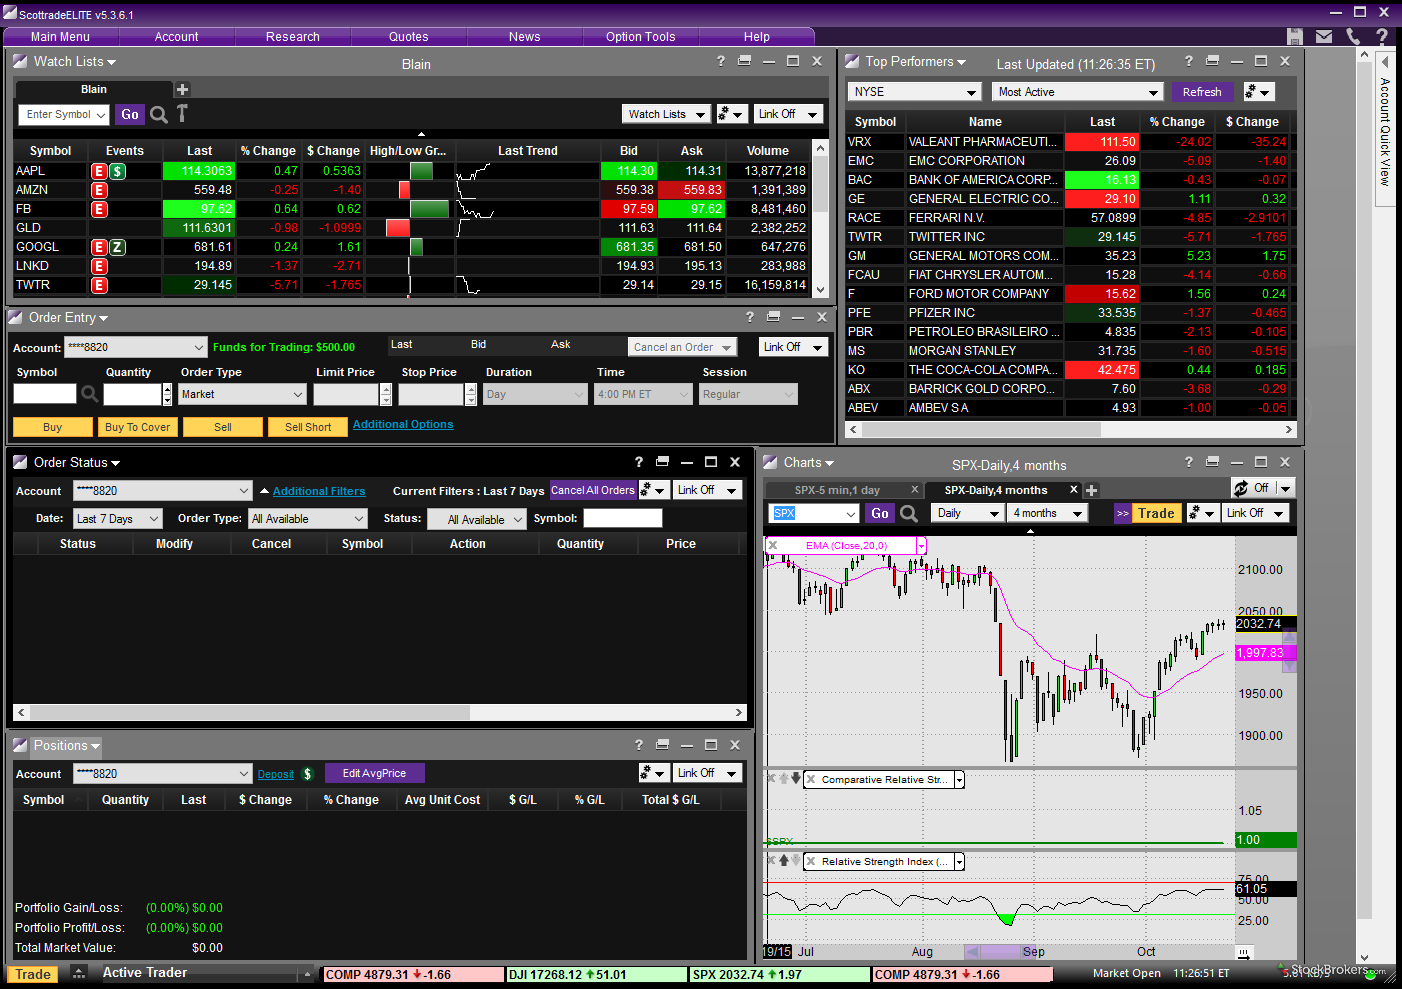 Scottrade ELITE desktop platform